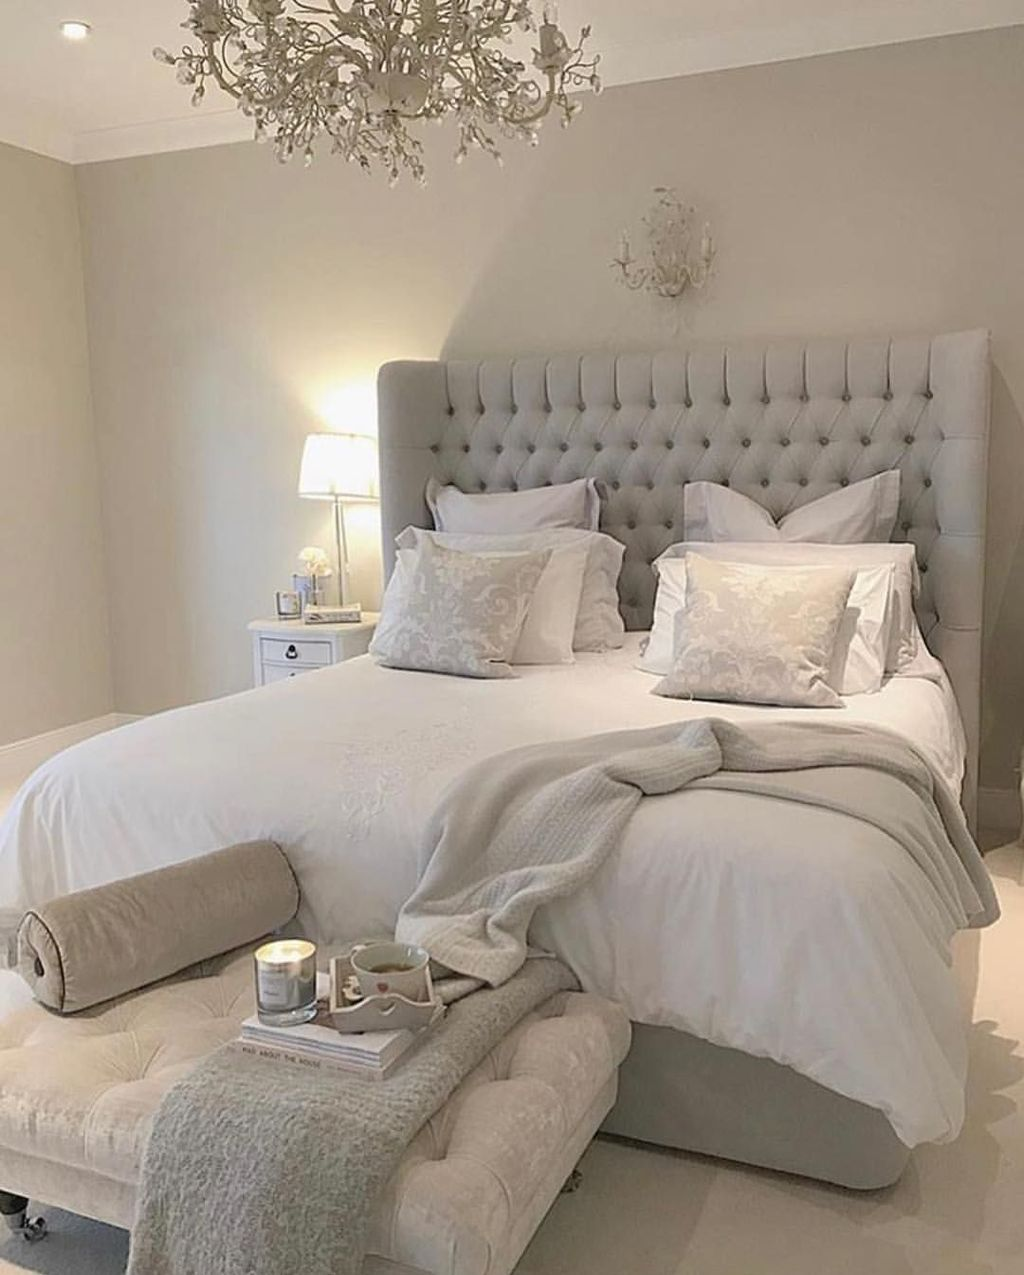 48 The Best Master Bedroom Design Ideas To Refresh Stylish